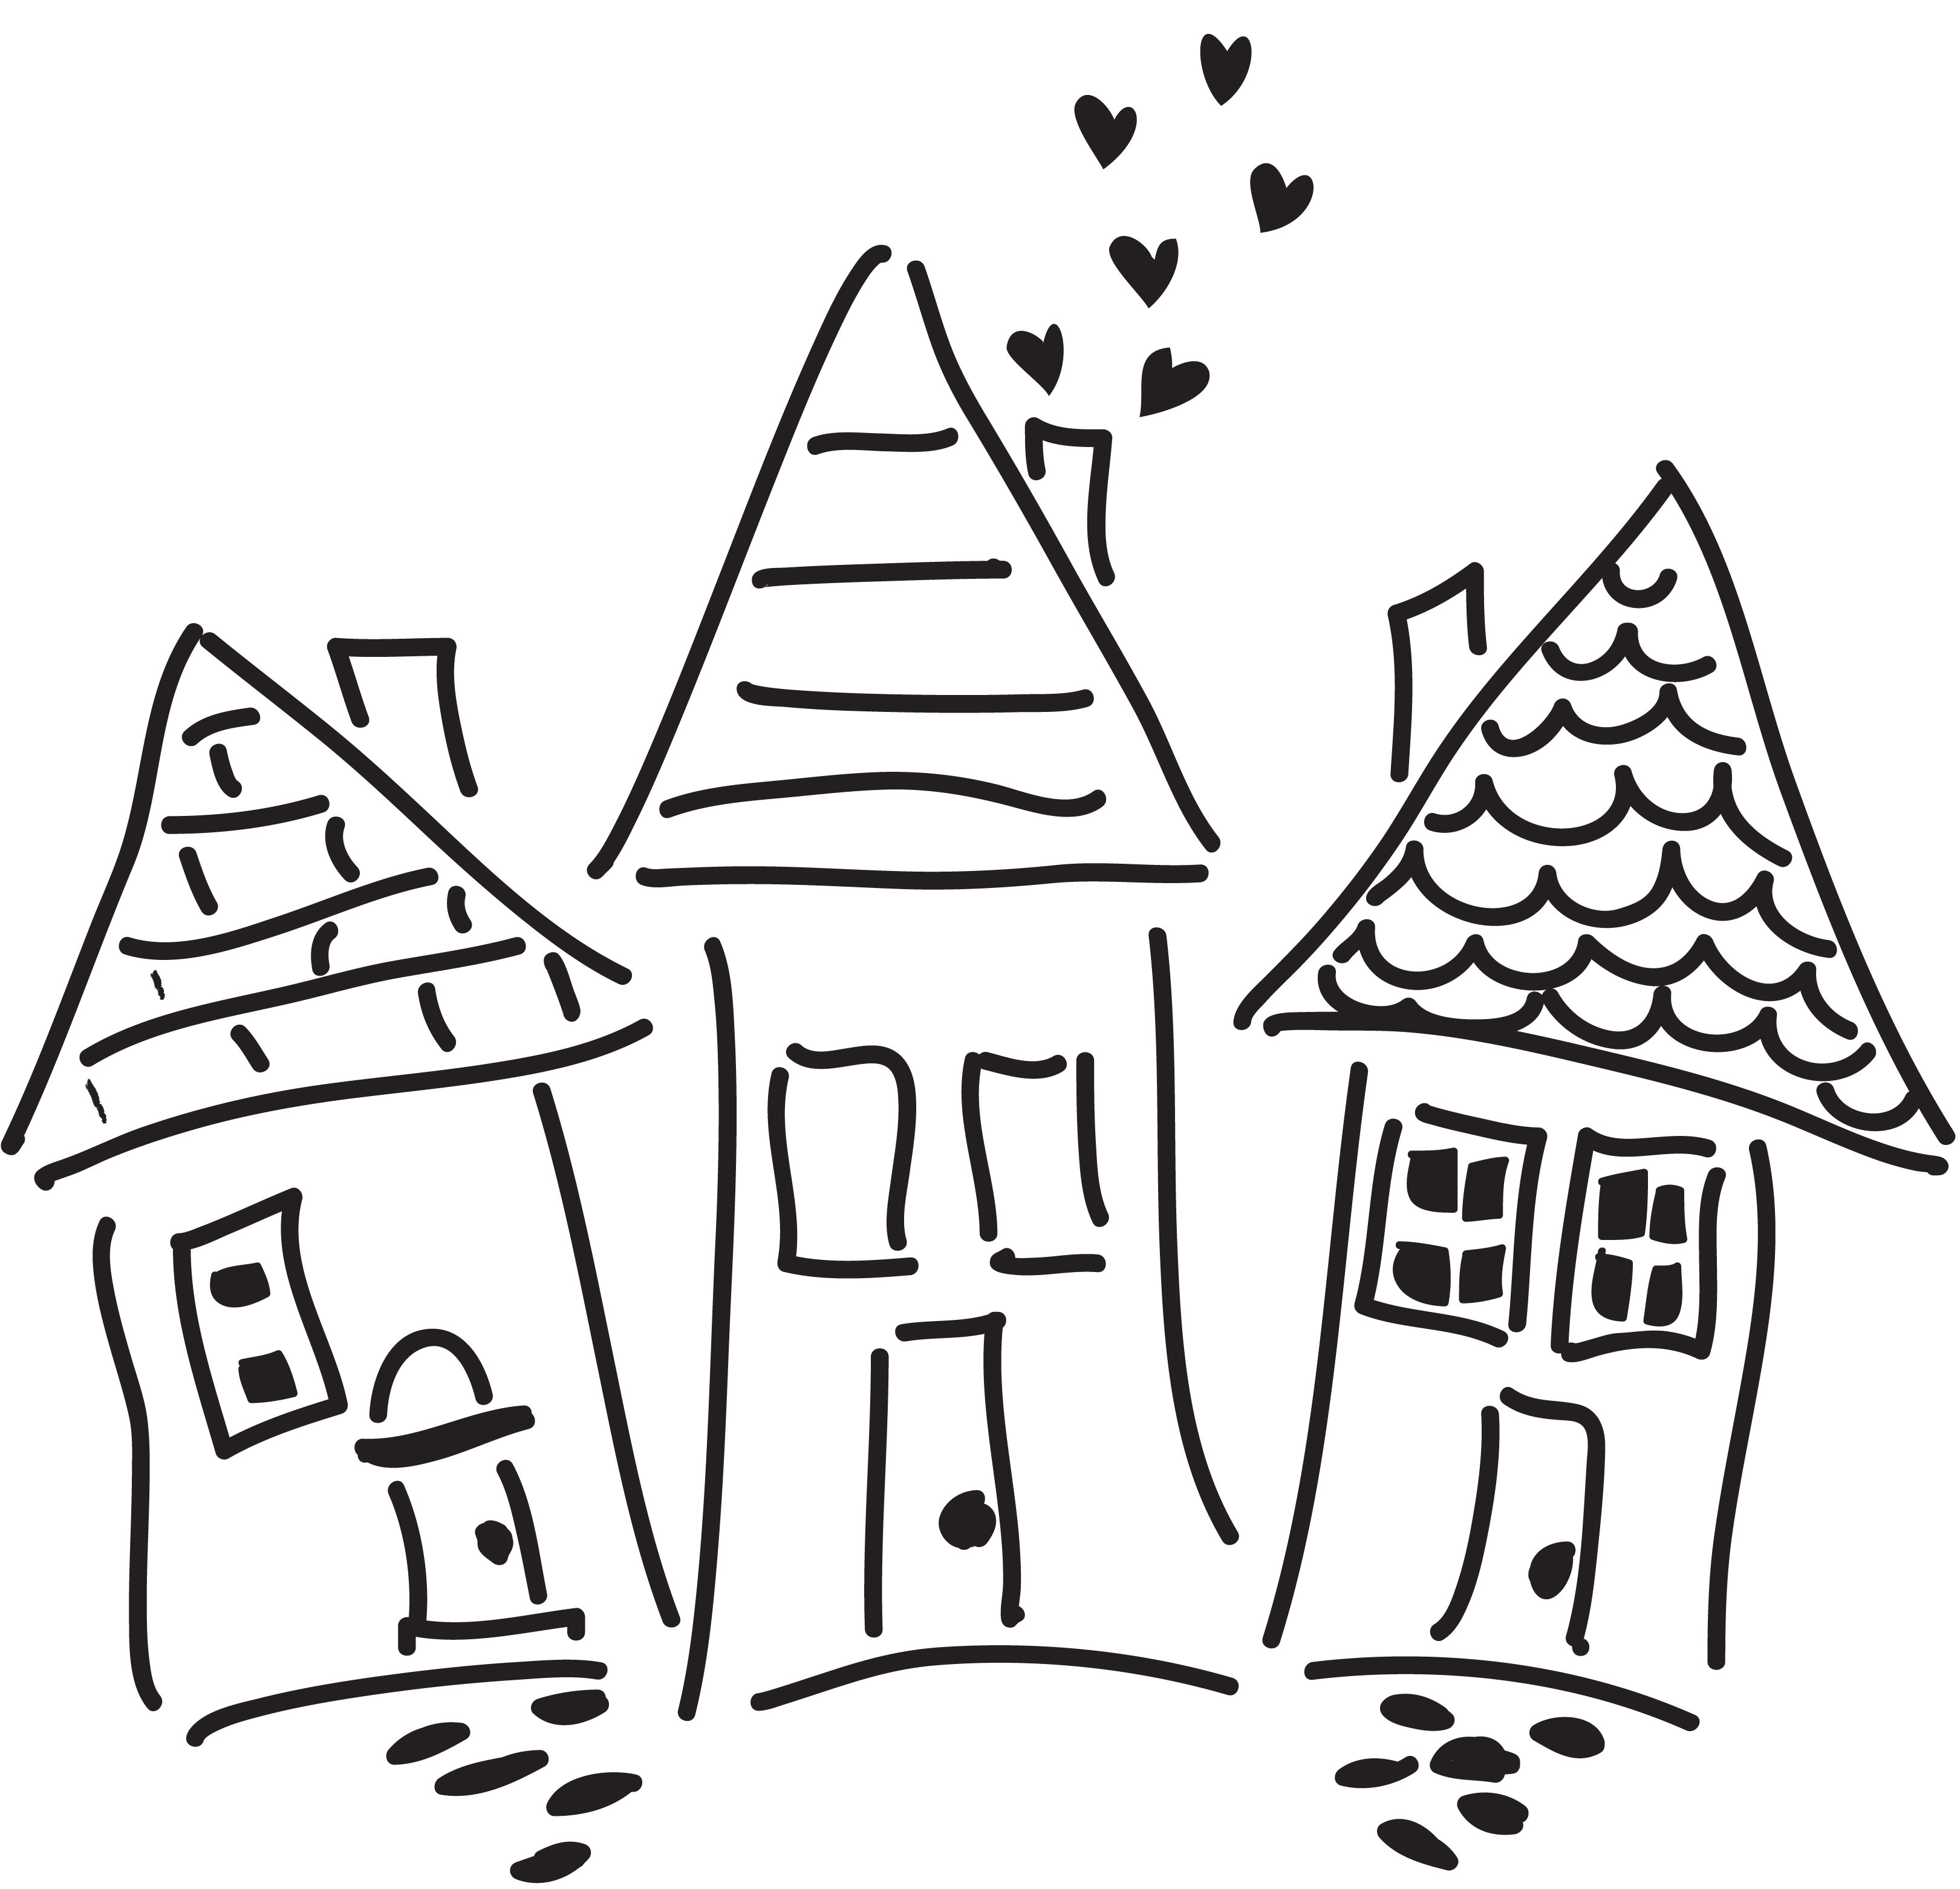 3241x3123 Whimsical Houses Marks, Scribbles, And Doodles